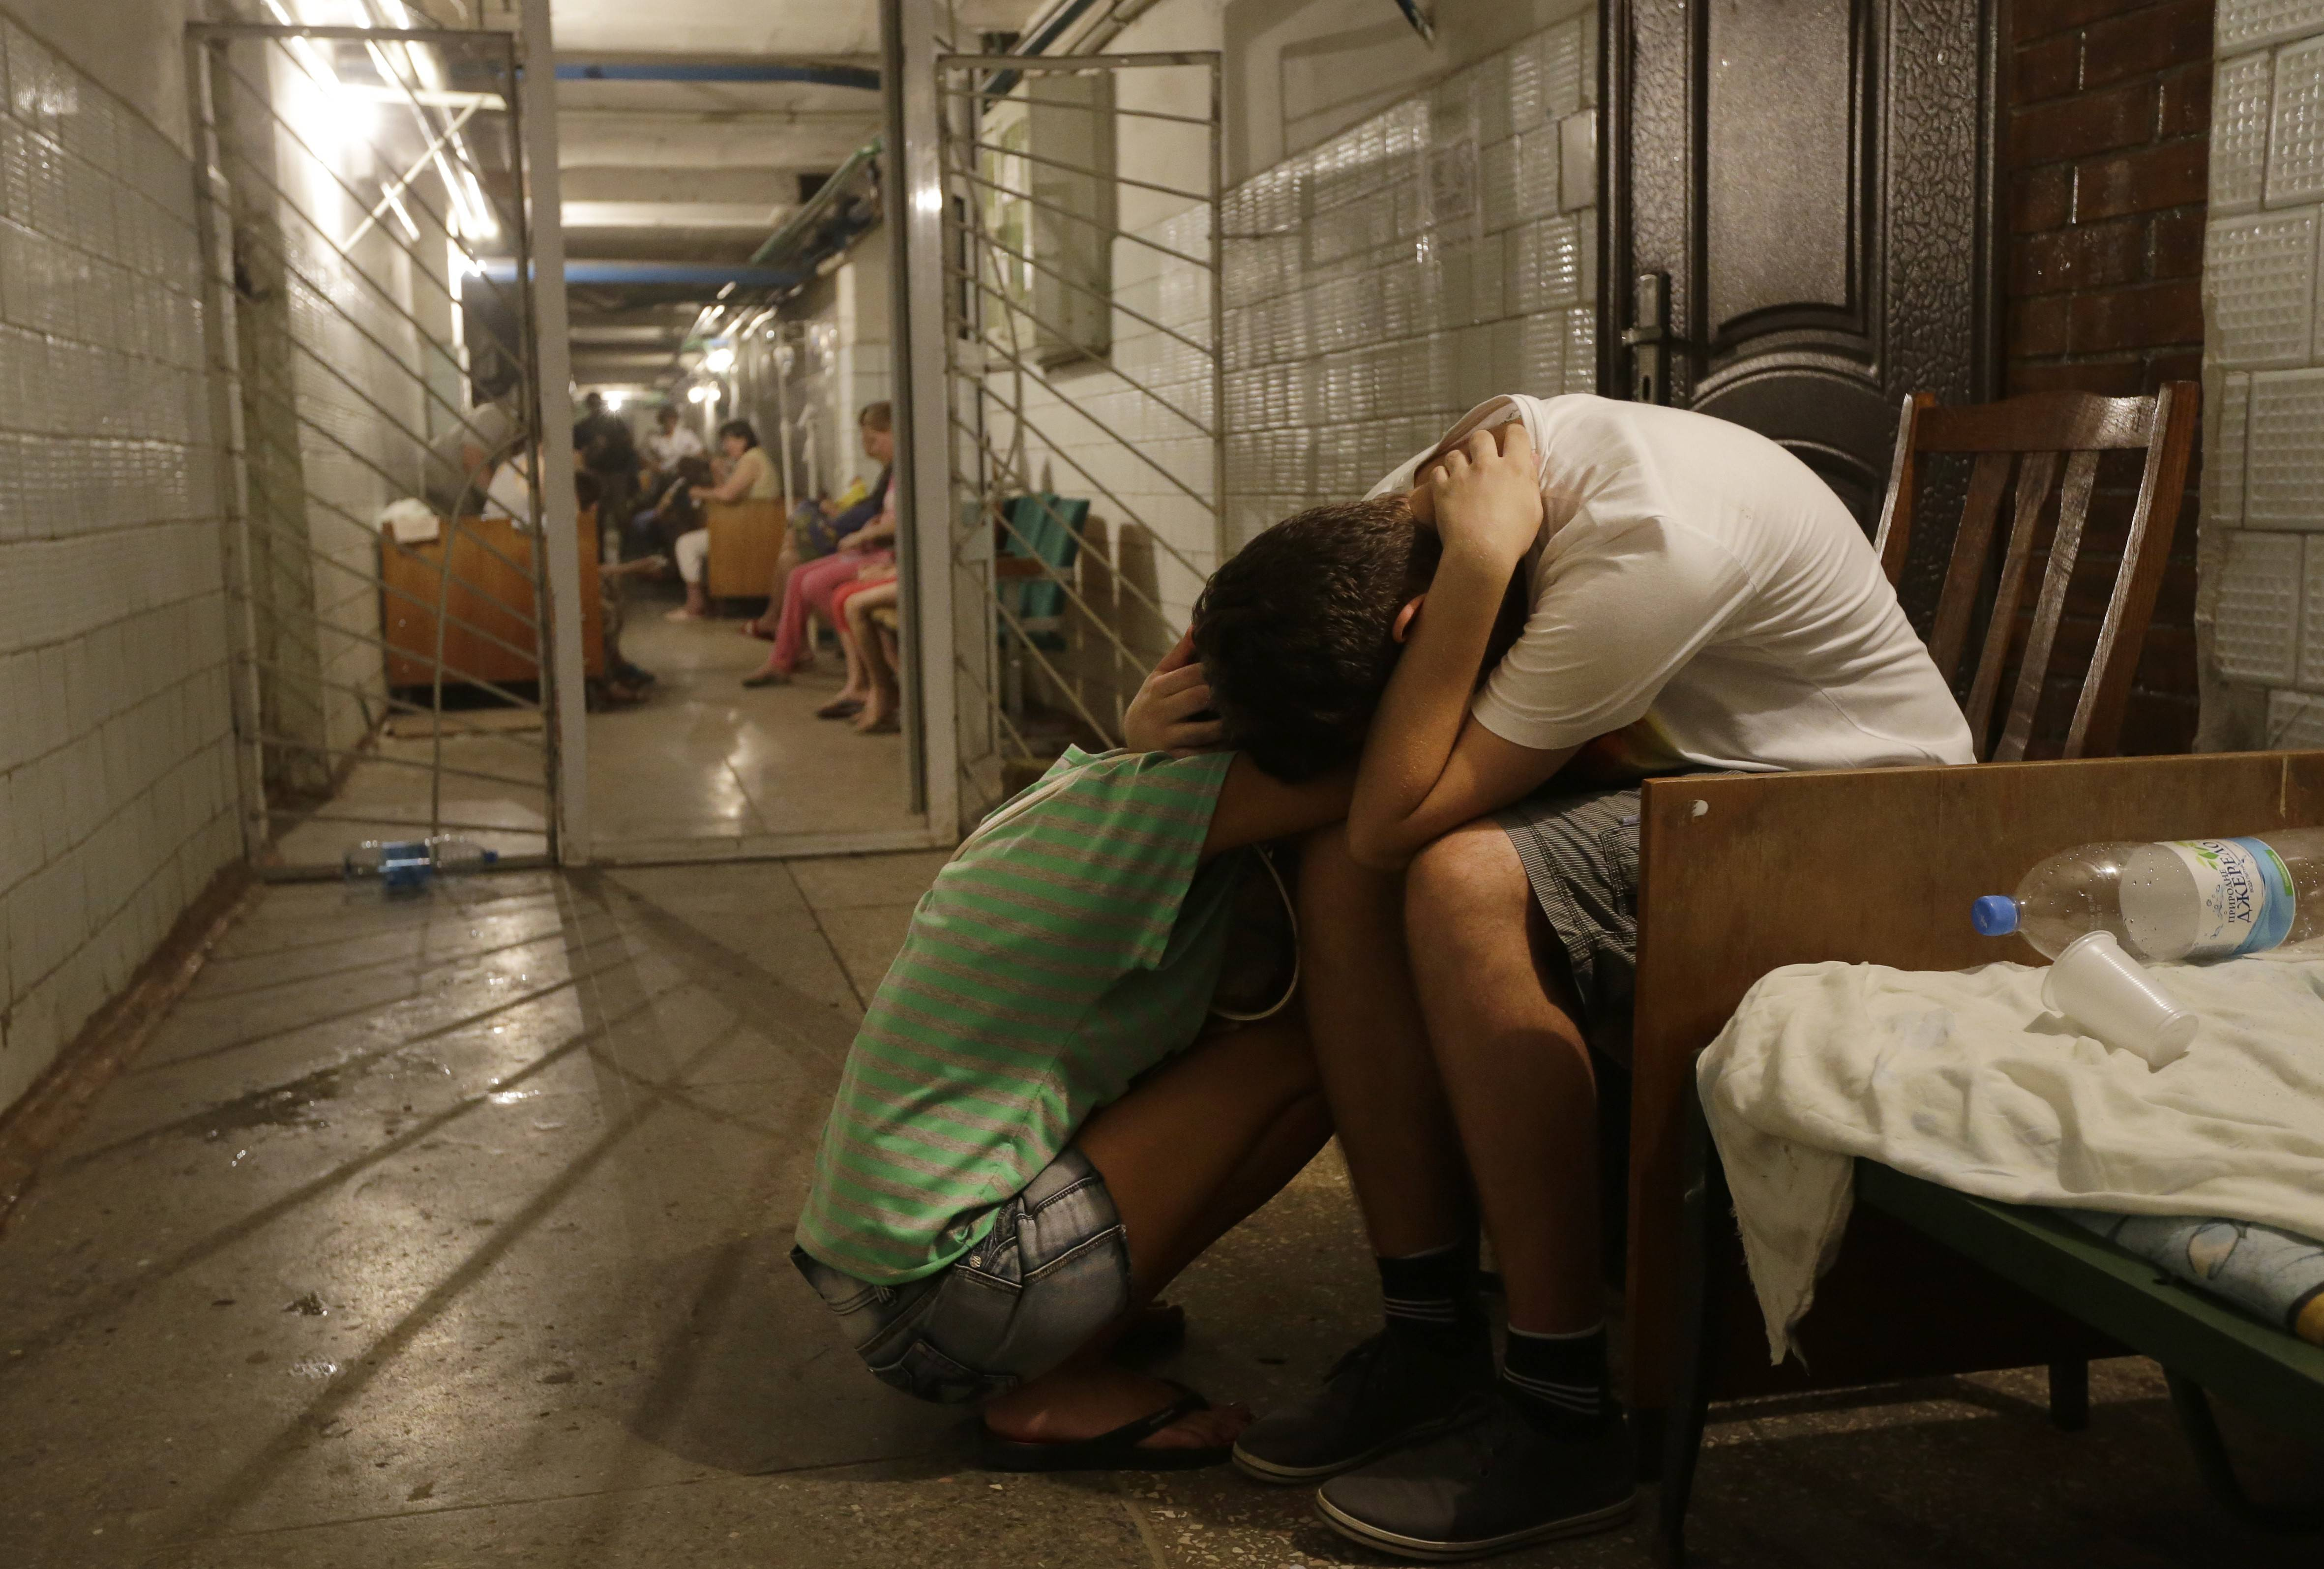 Local residents cry and hug each other as they sit in a hospital basement being used as a bomb-shelter after shelling, in Donetsk, eastern Ukraine, Thursday, Aug. 7, 2014. Fighting in the rebel stronghold of Donetsk claimed more civilian casualties, bringing new calls from Russian nationalists for President Vladimir Putin to send in the army.